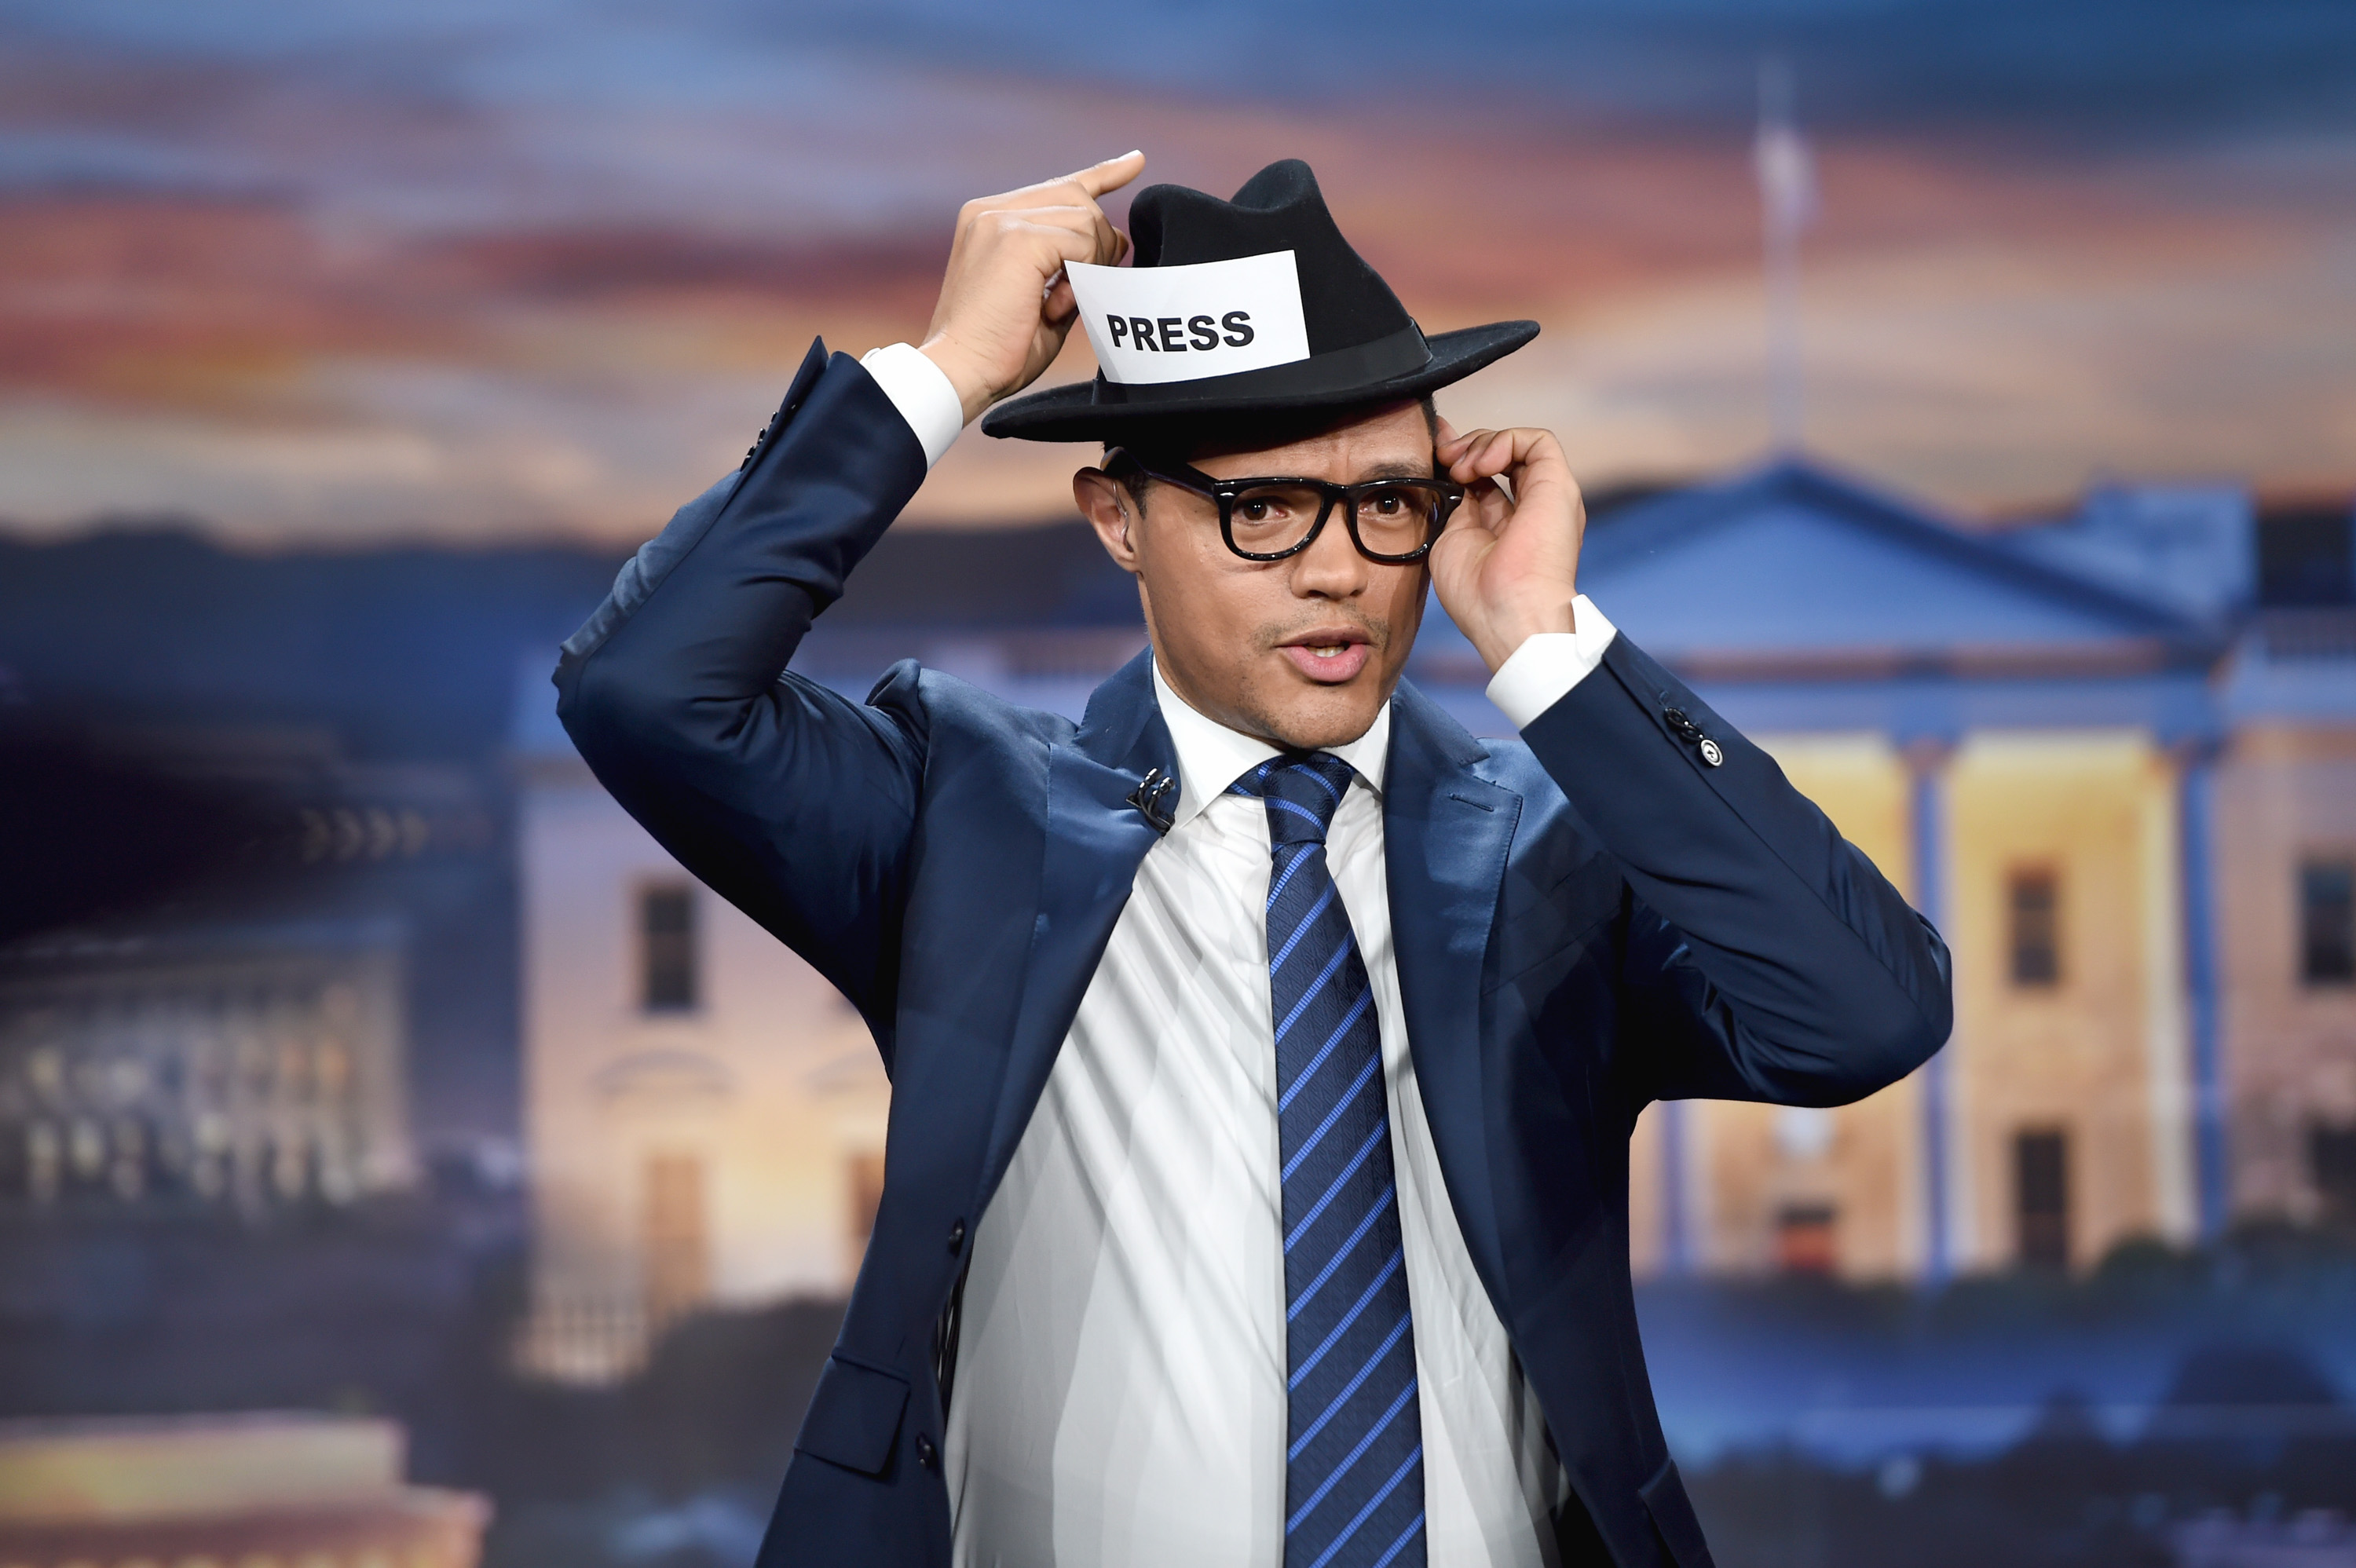 'The Daily Show with Trevor Noah' LIVE Election Night coverage